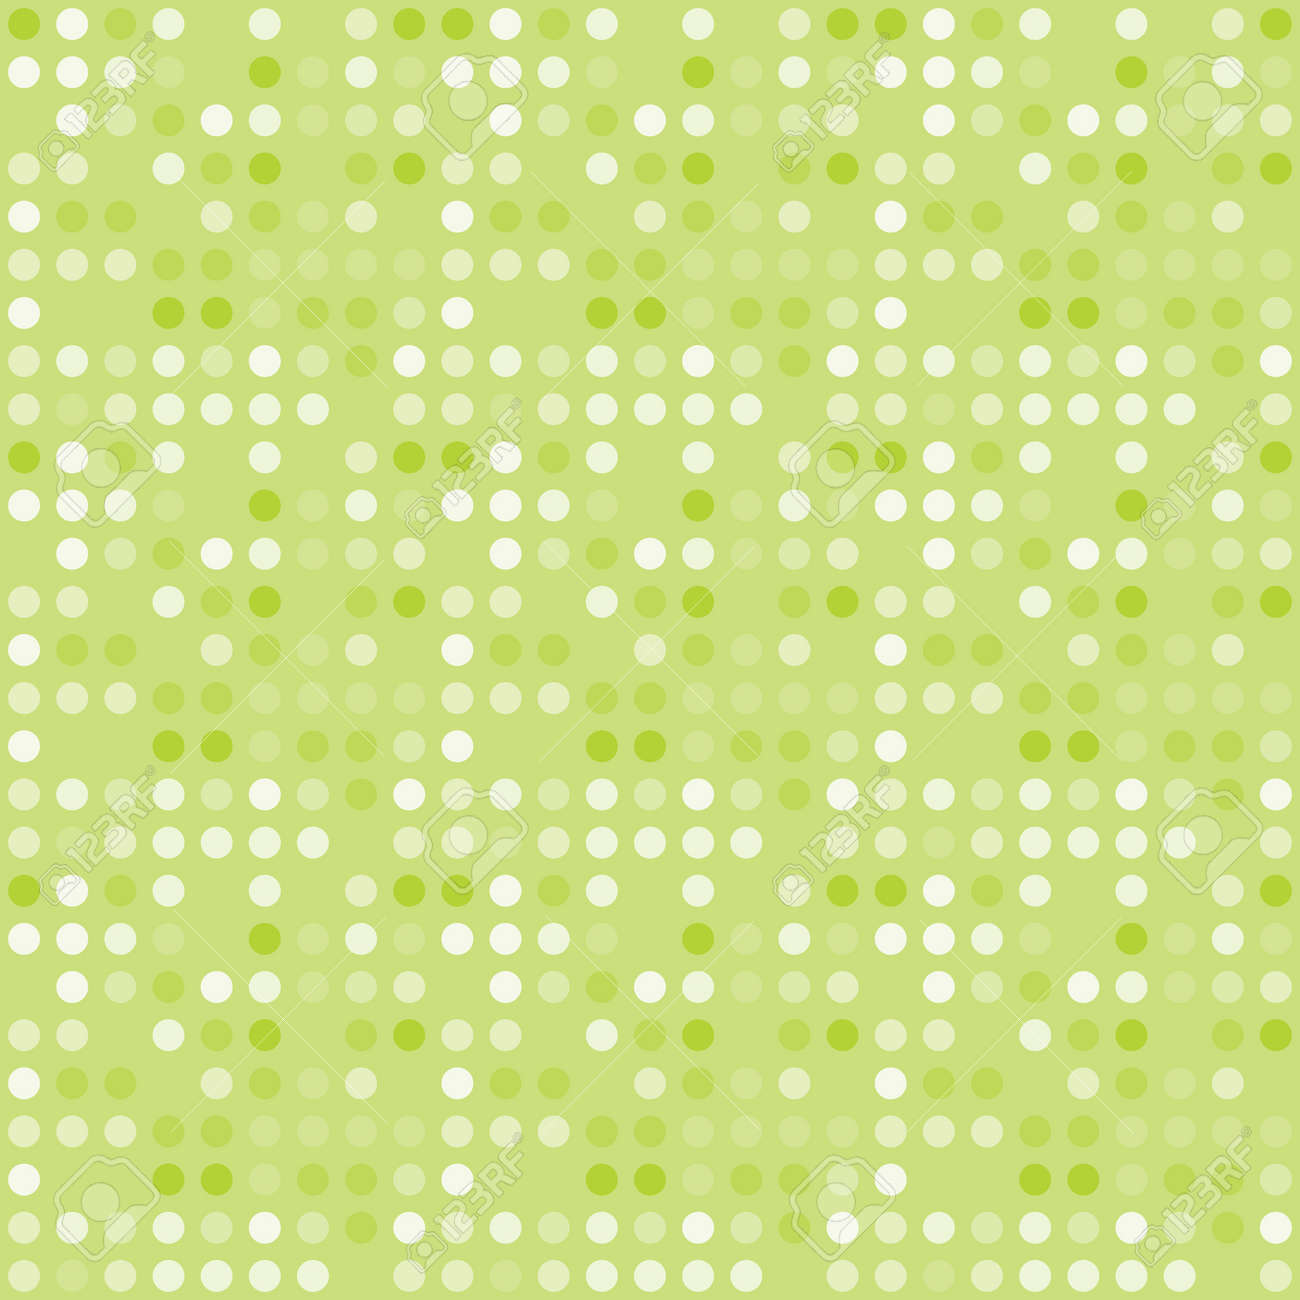 Seamless abstract background of colored varied circles for design. Colored circles background. - 123540639